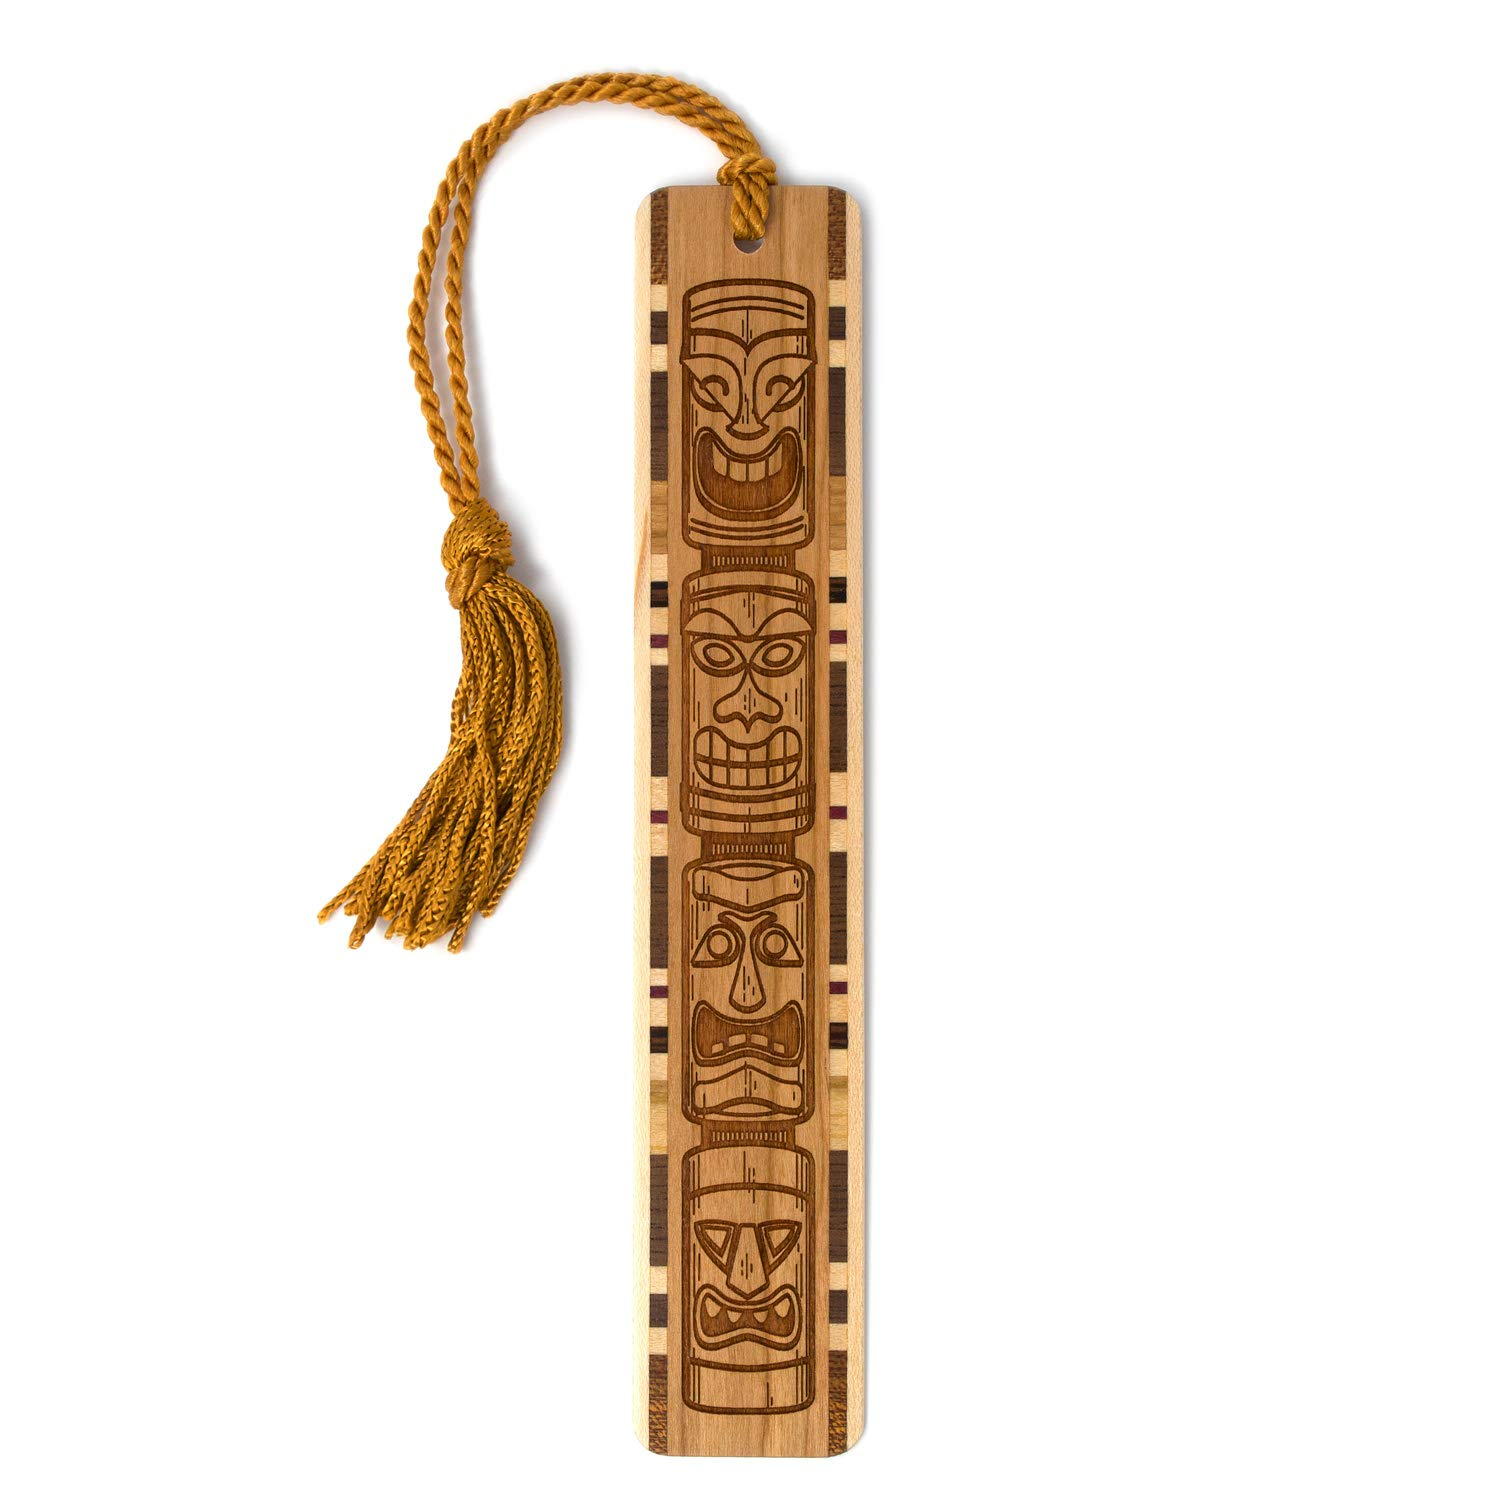 Tiki Totem Artwork, Engraved Wooden Bookmark with Tassel - Search B07QZTSP77 for Personalized Version